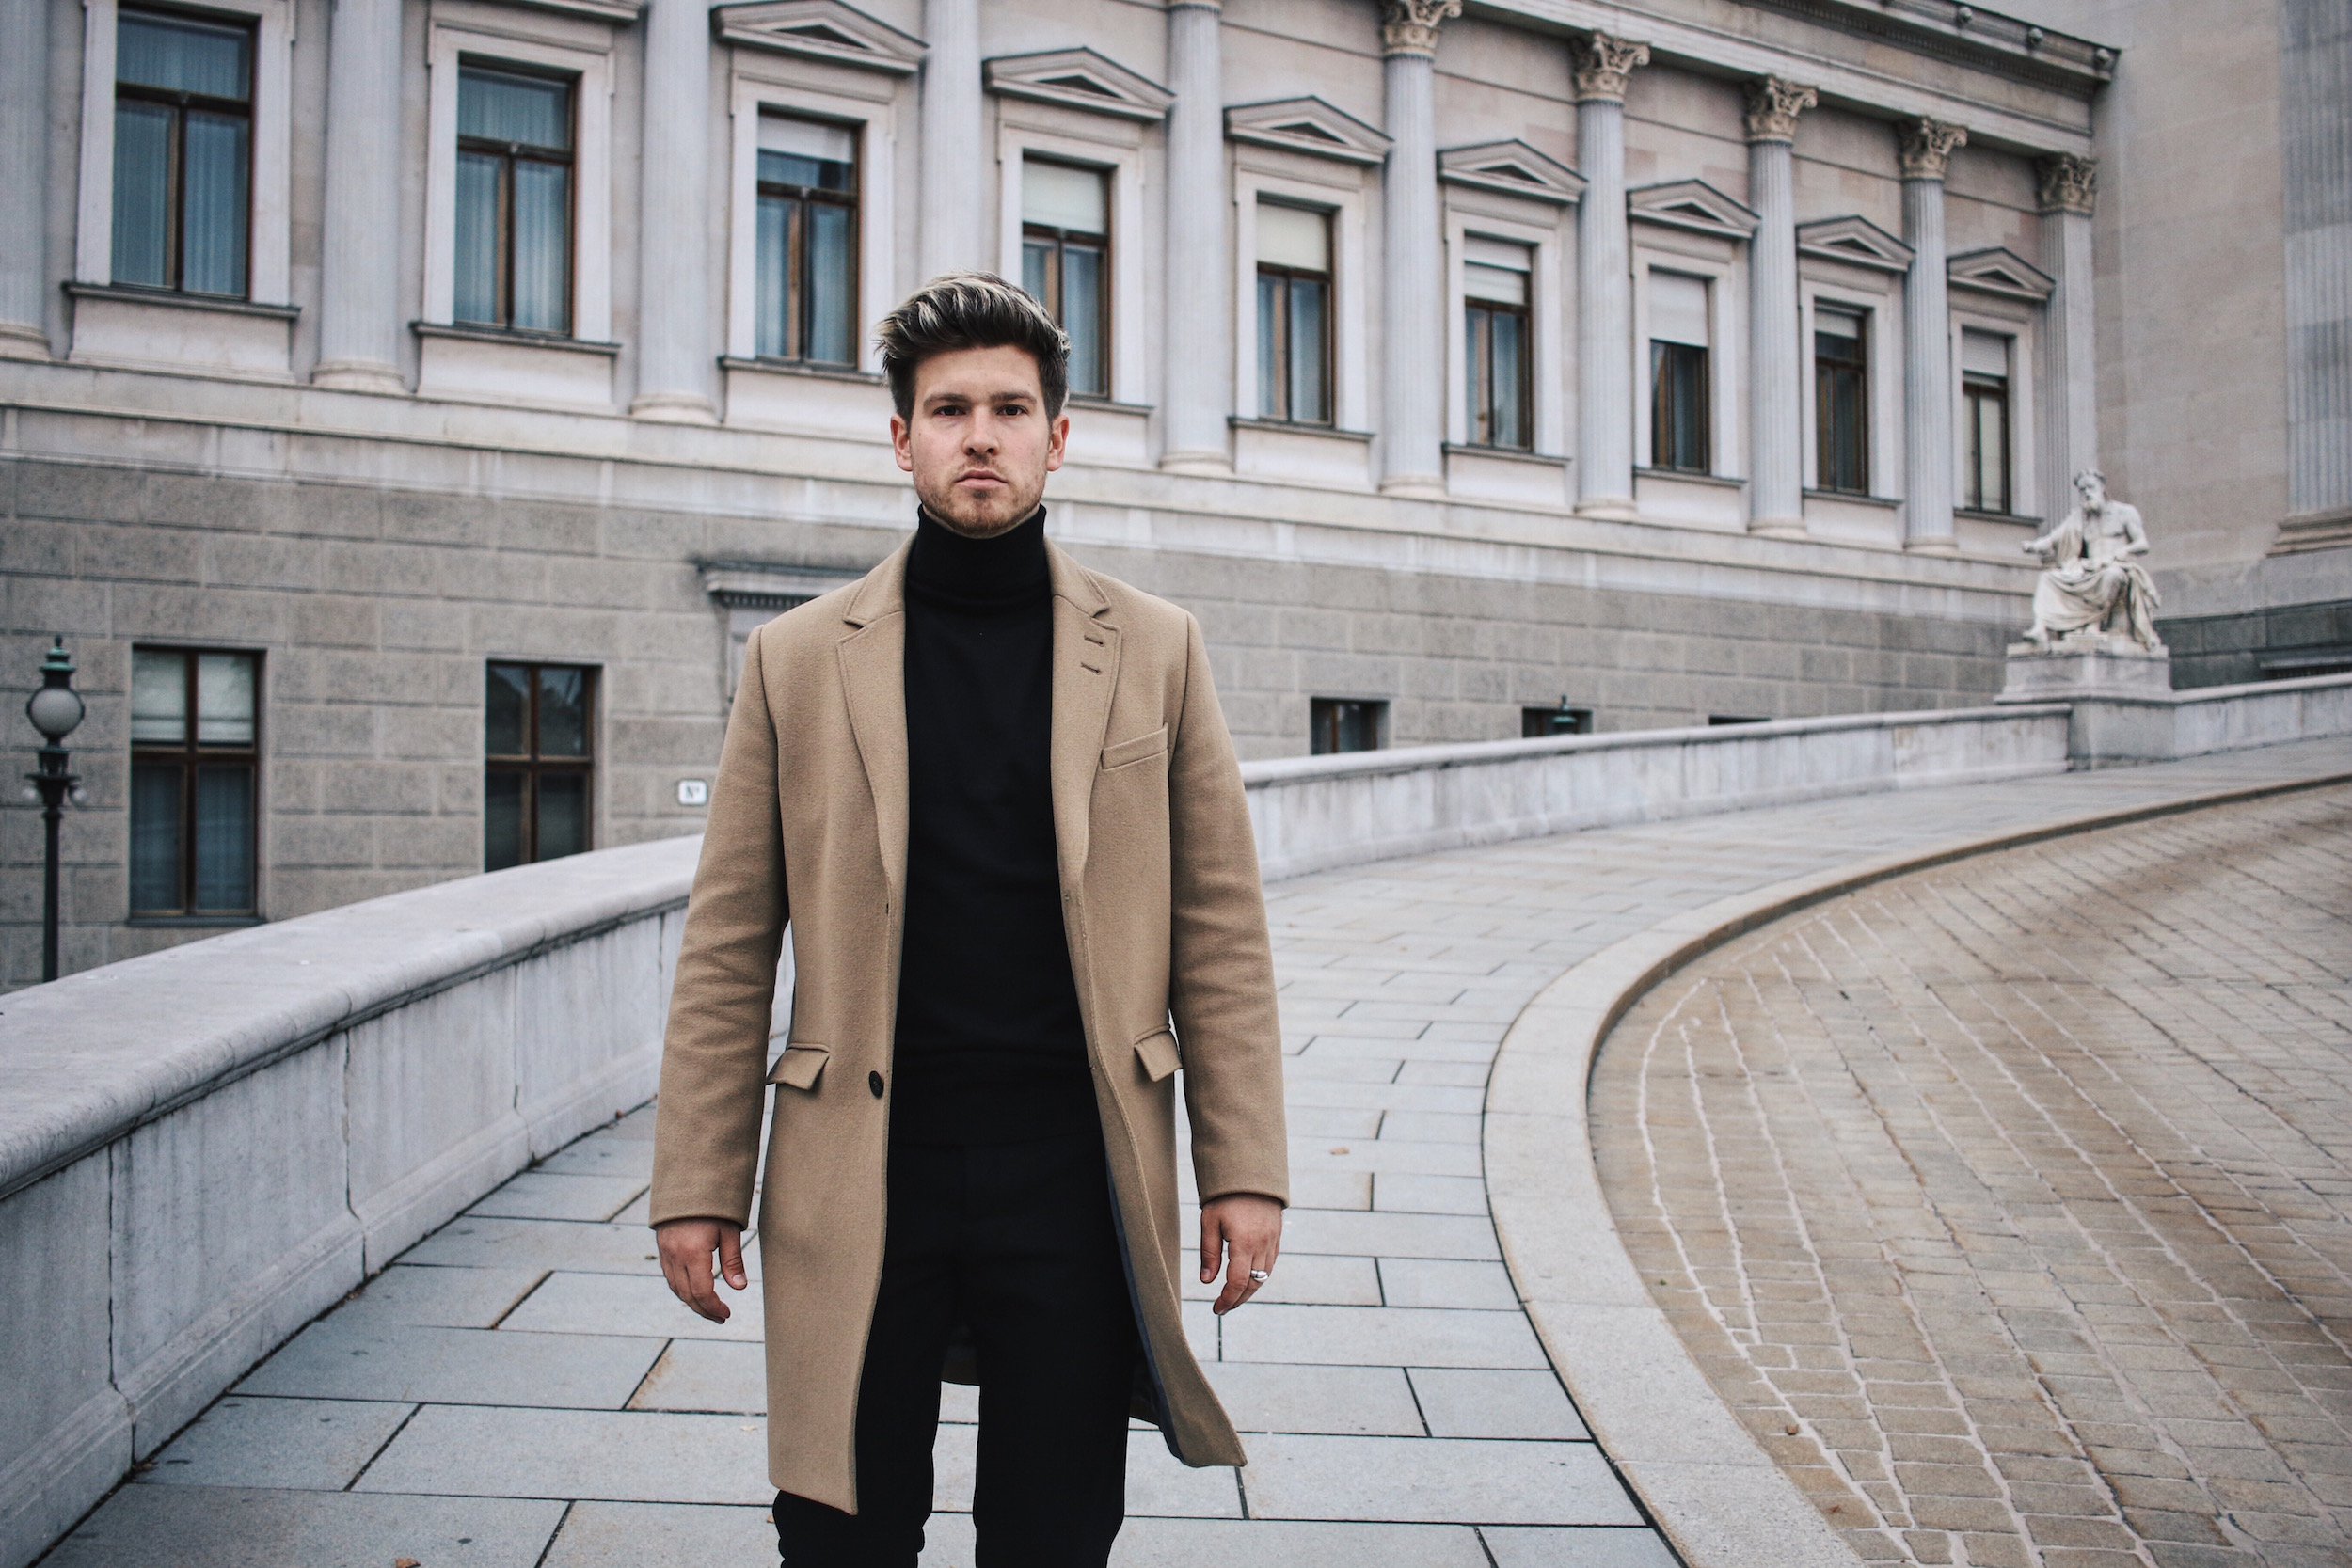 Tiger of Sweden Camel Coat_Turtleneck Sweater_All Black_VOR Shoes_Outfit by Meanwhile in Awesometown_Austrian Mens Fashion and Lifestyle Blogger 8